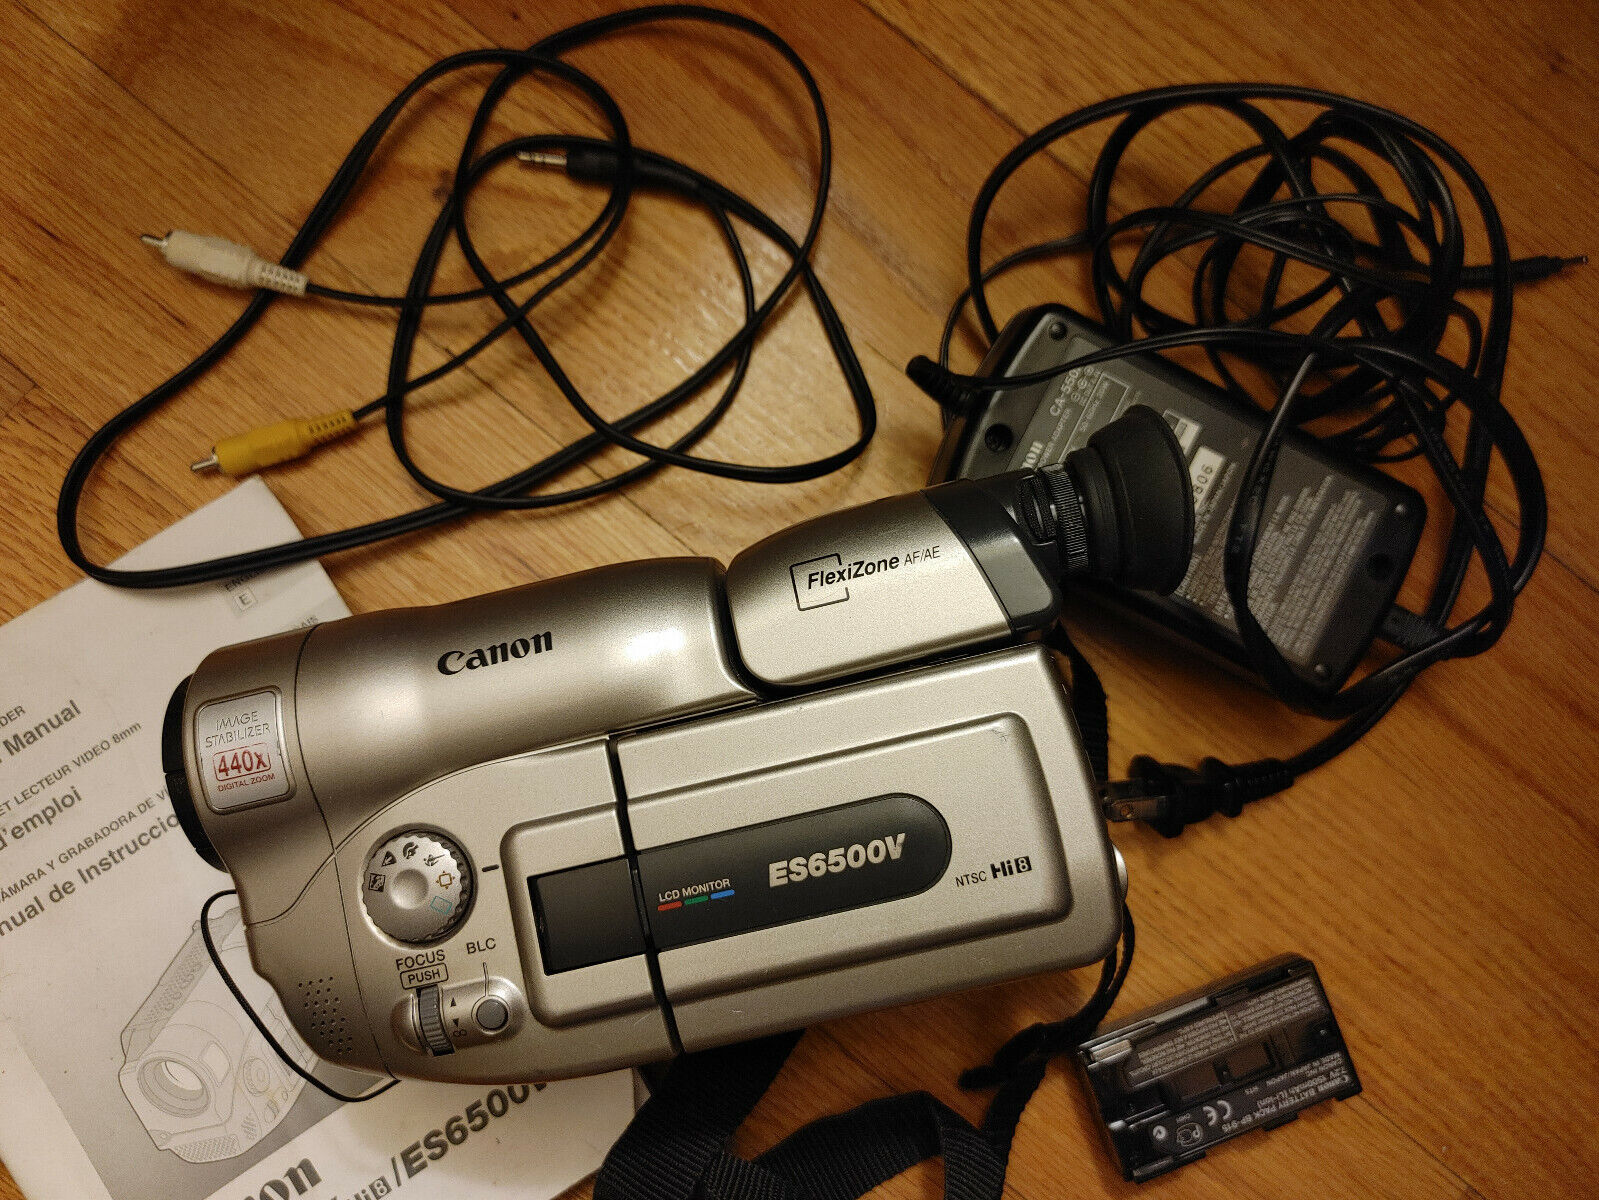 Canon ES6500V Hi8 NTSC Camcorder With Battery, Charger, Manual, Cable.  - $105.00